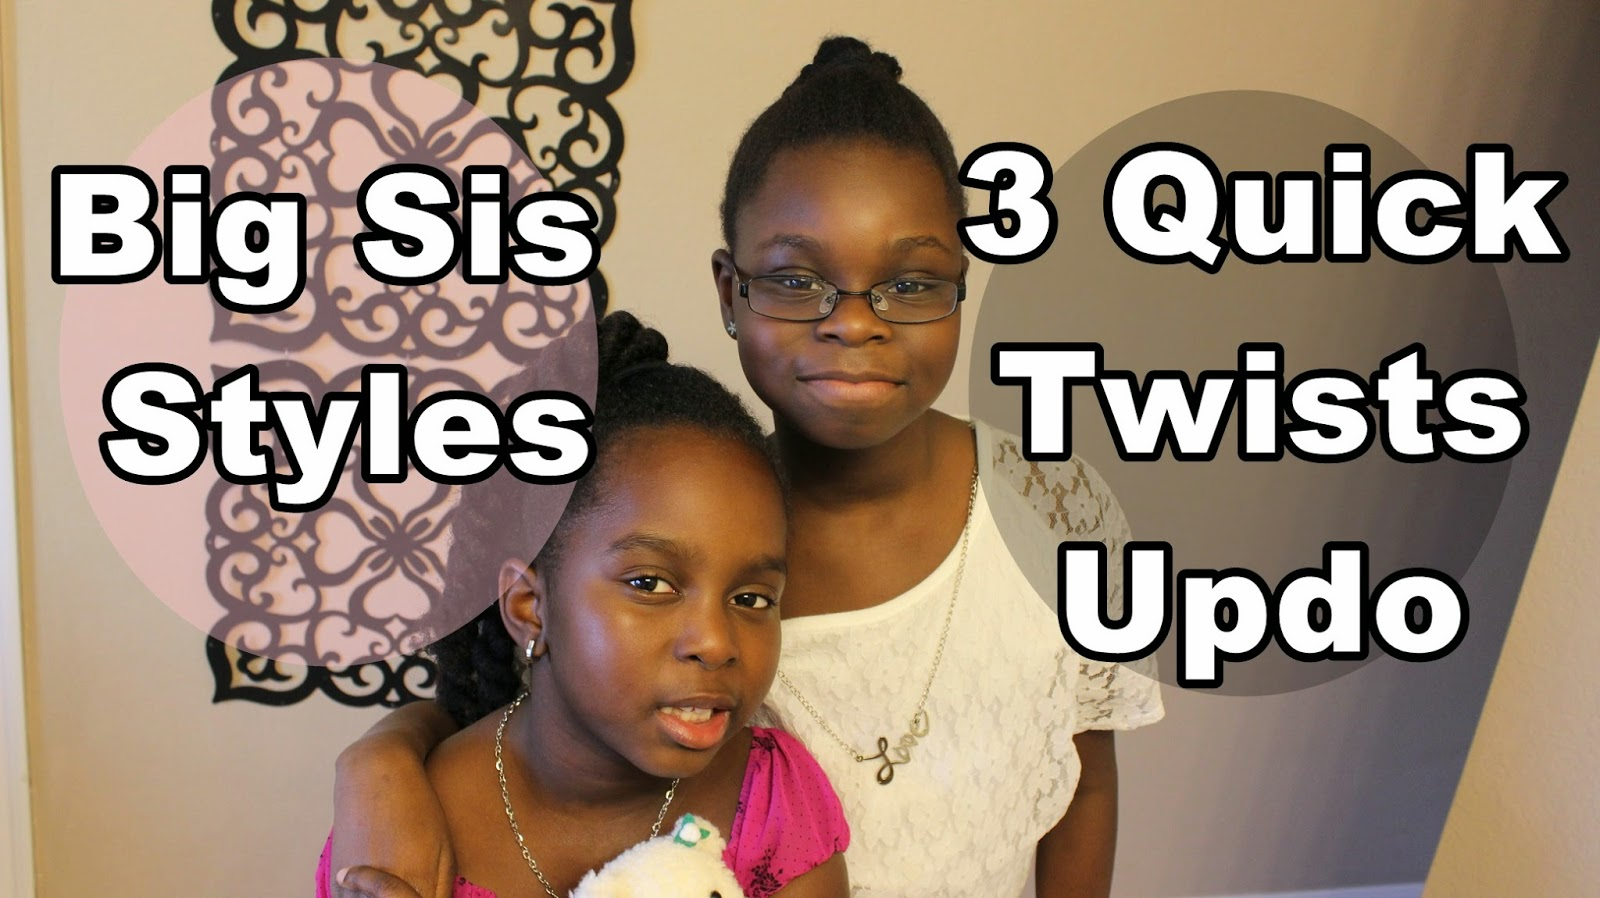 3 Quick Twists Updo on Natural Hair